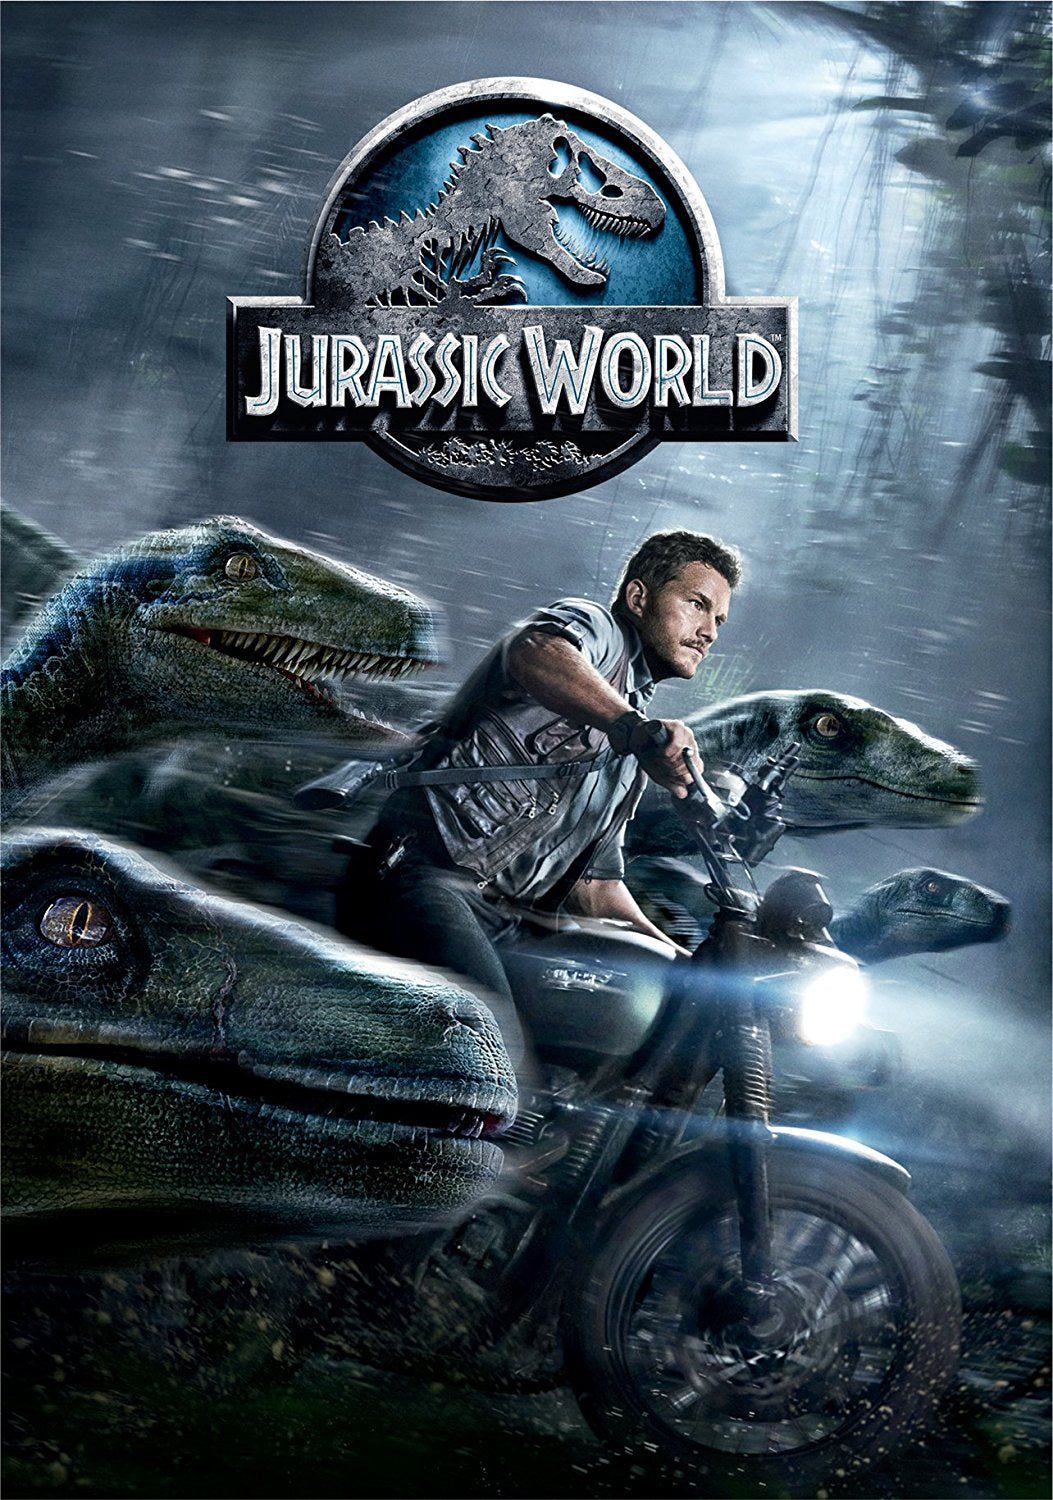 Jurassic World (DVD, 2015) Chris Pratt/Bryce Dallas Howard